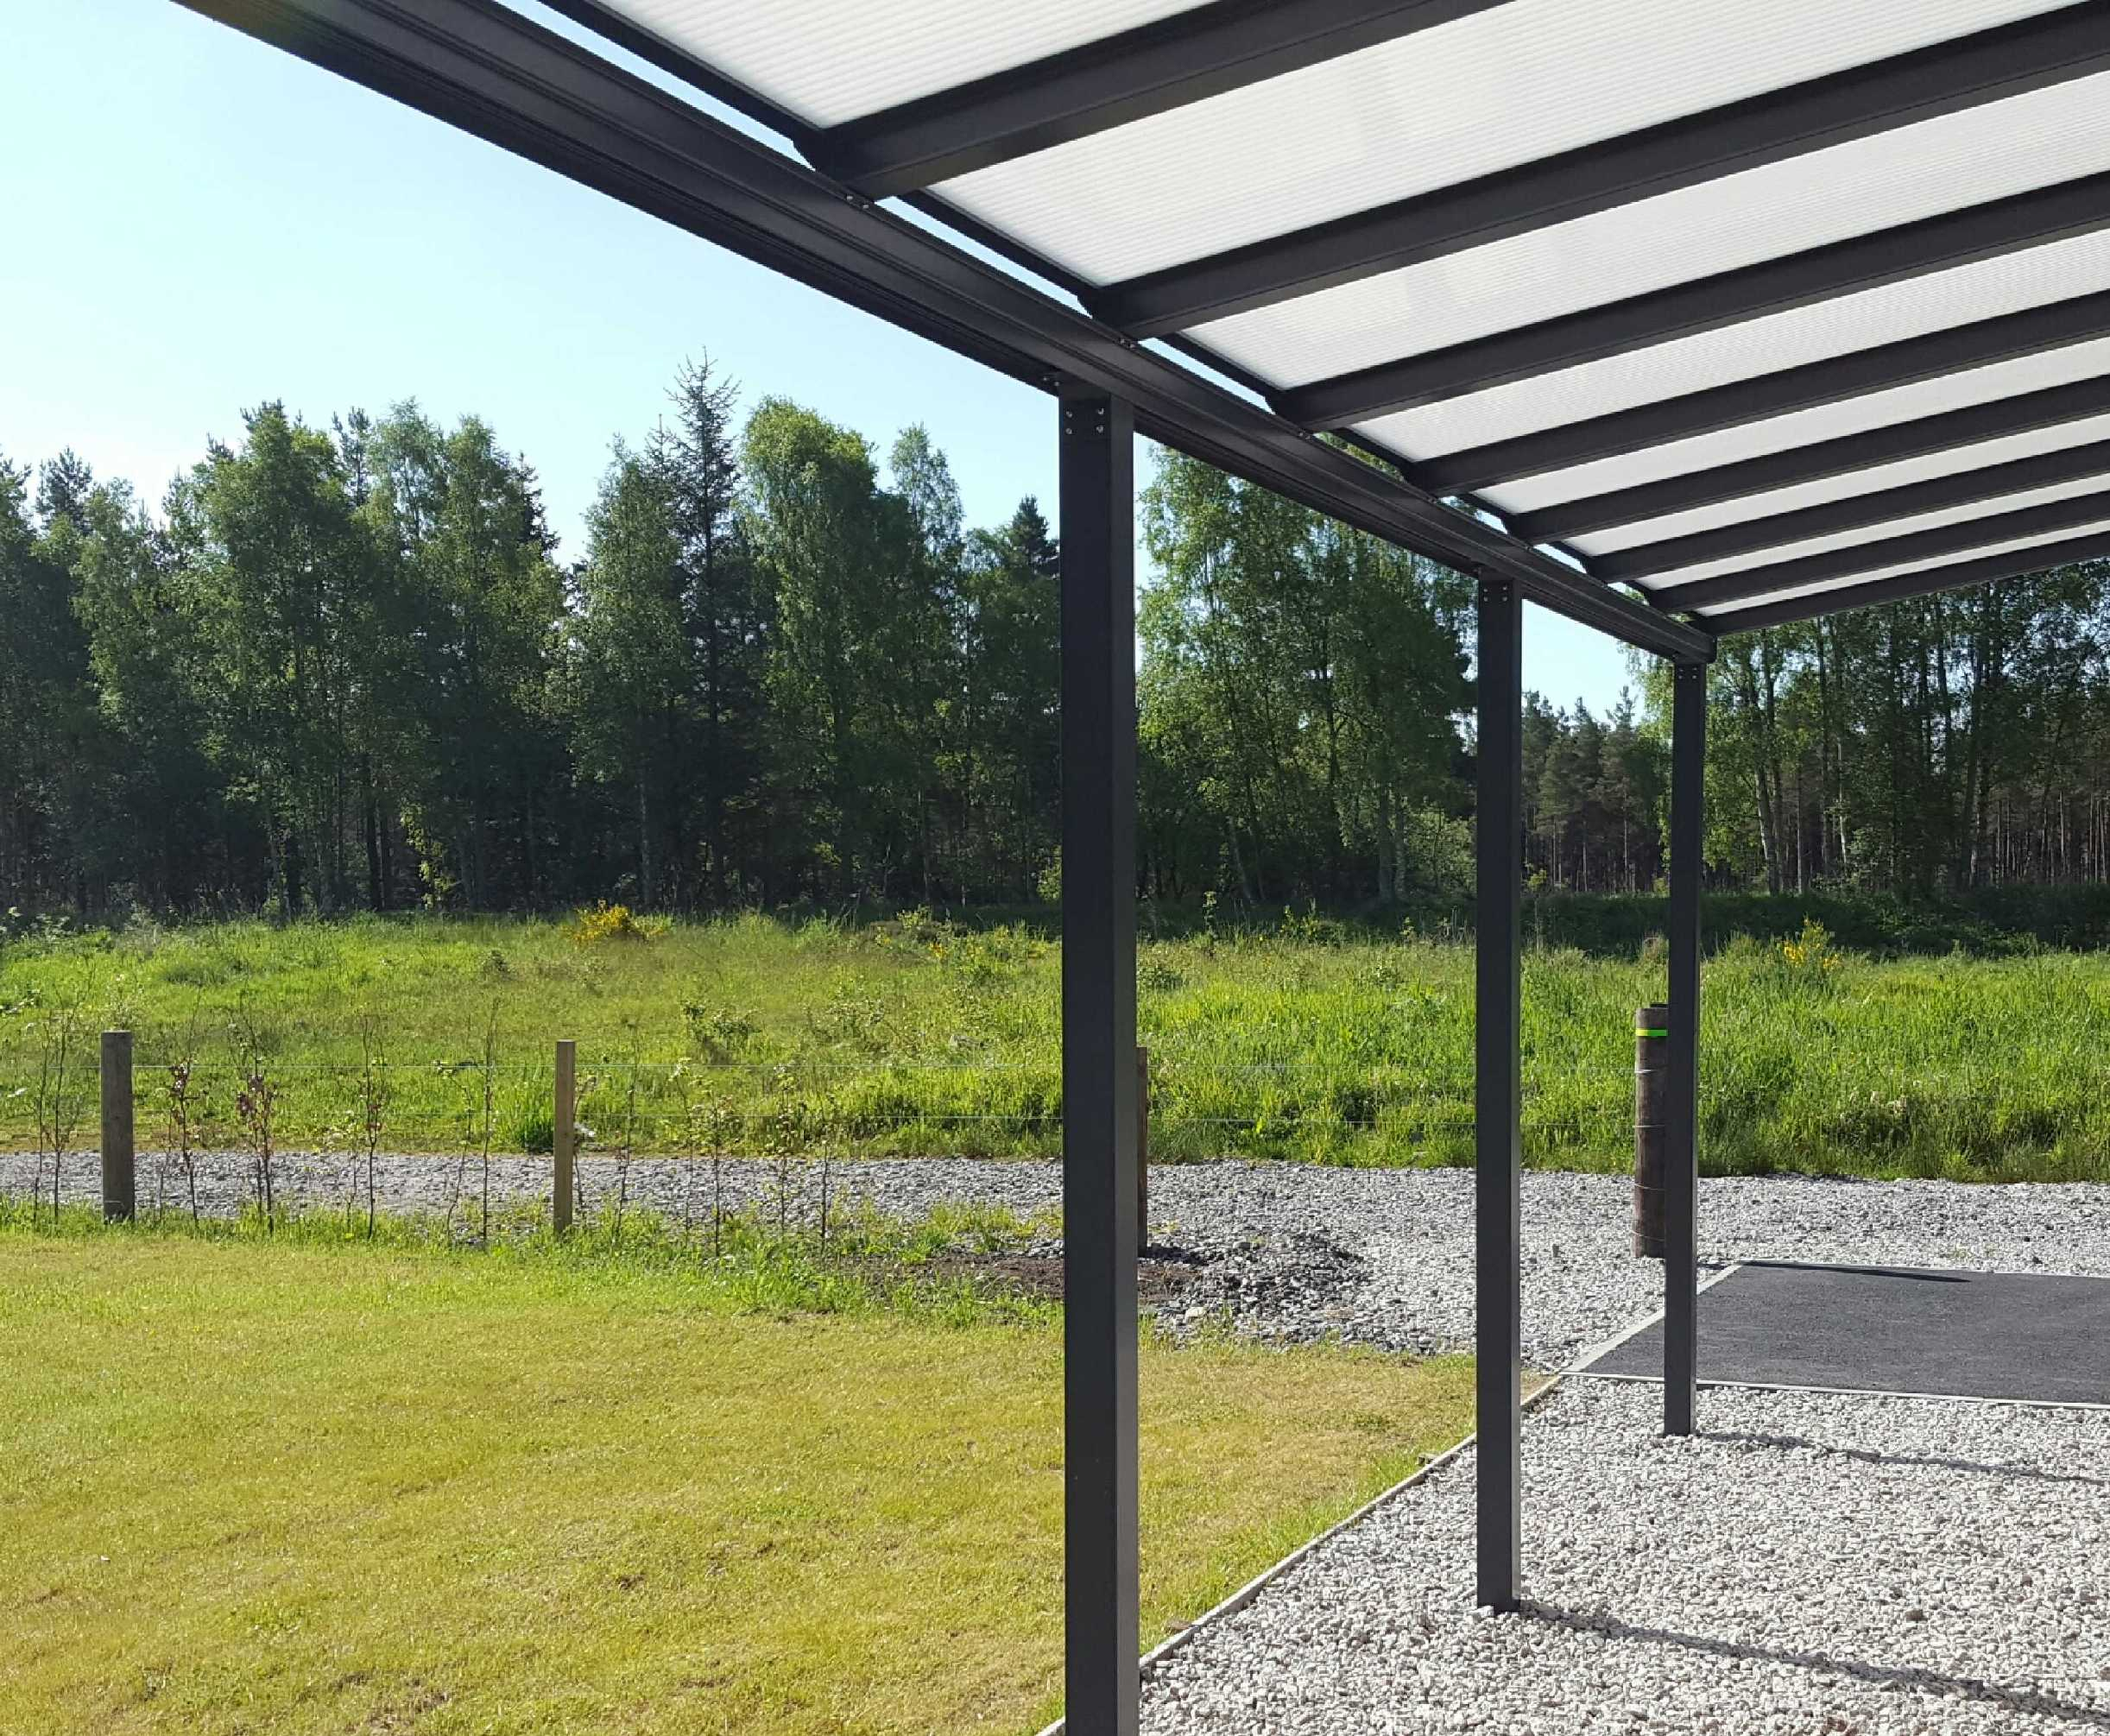 Omega Smart Lean-To Canopy, Anthracite Grey, 16mm Polycarbonate Glazing - 4.2m (W) x 1.5m (P), (3) Supporting Posts